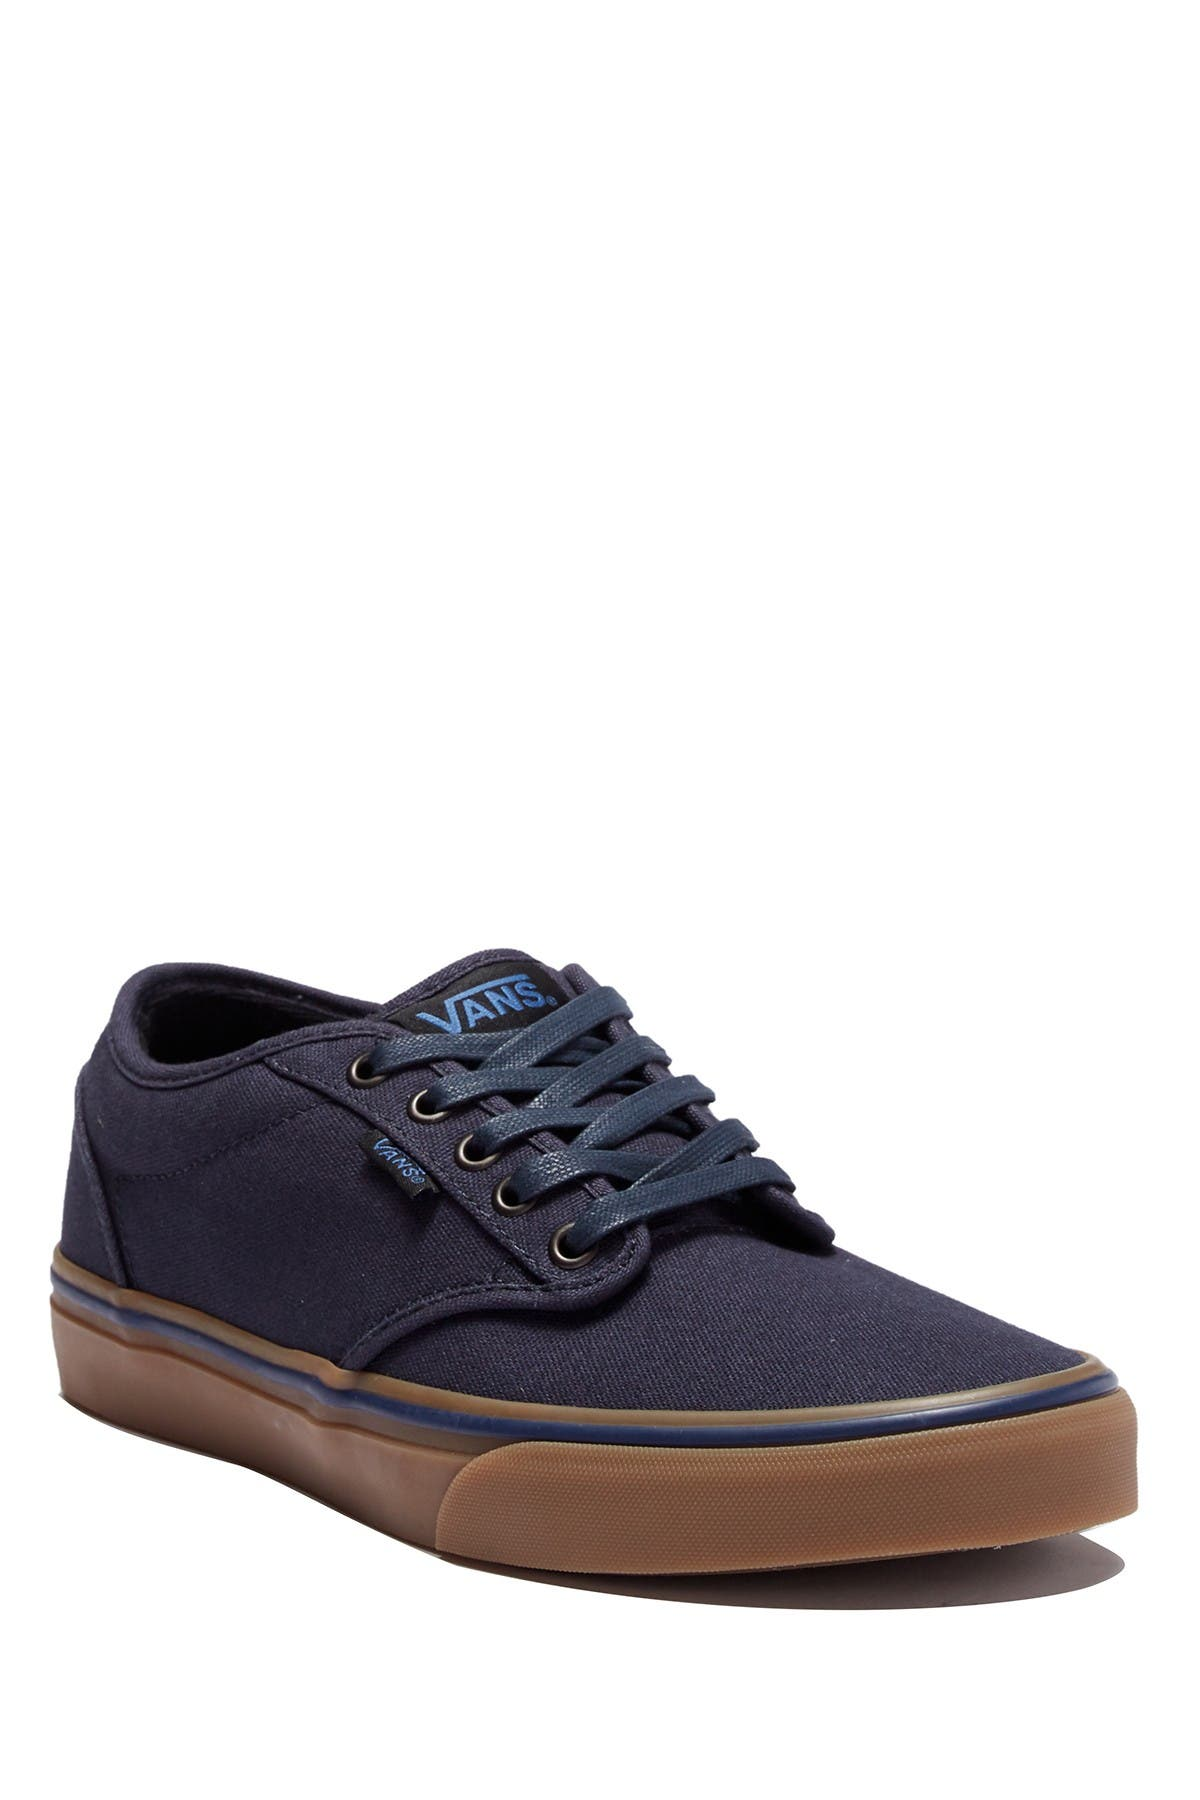 vans atwood canvas